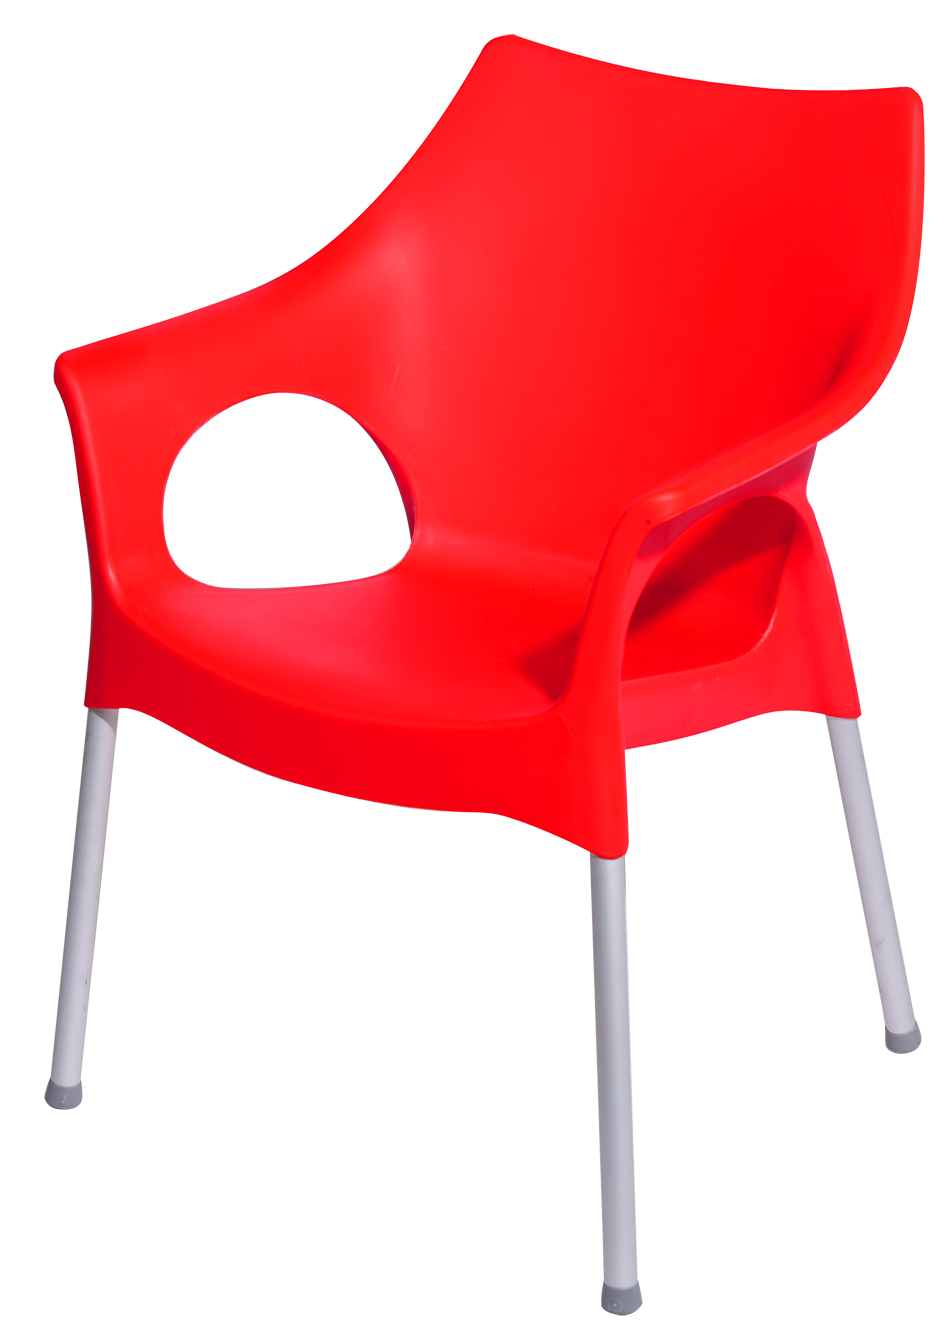 Office chair for sale jhb - Rld Chair